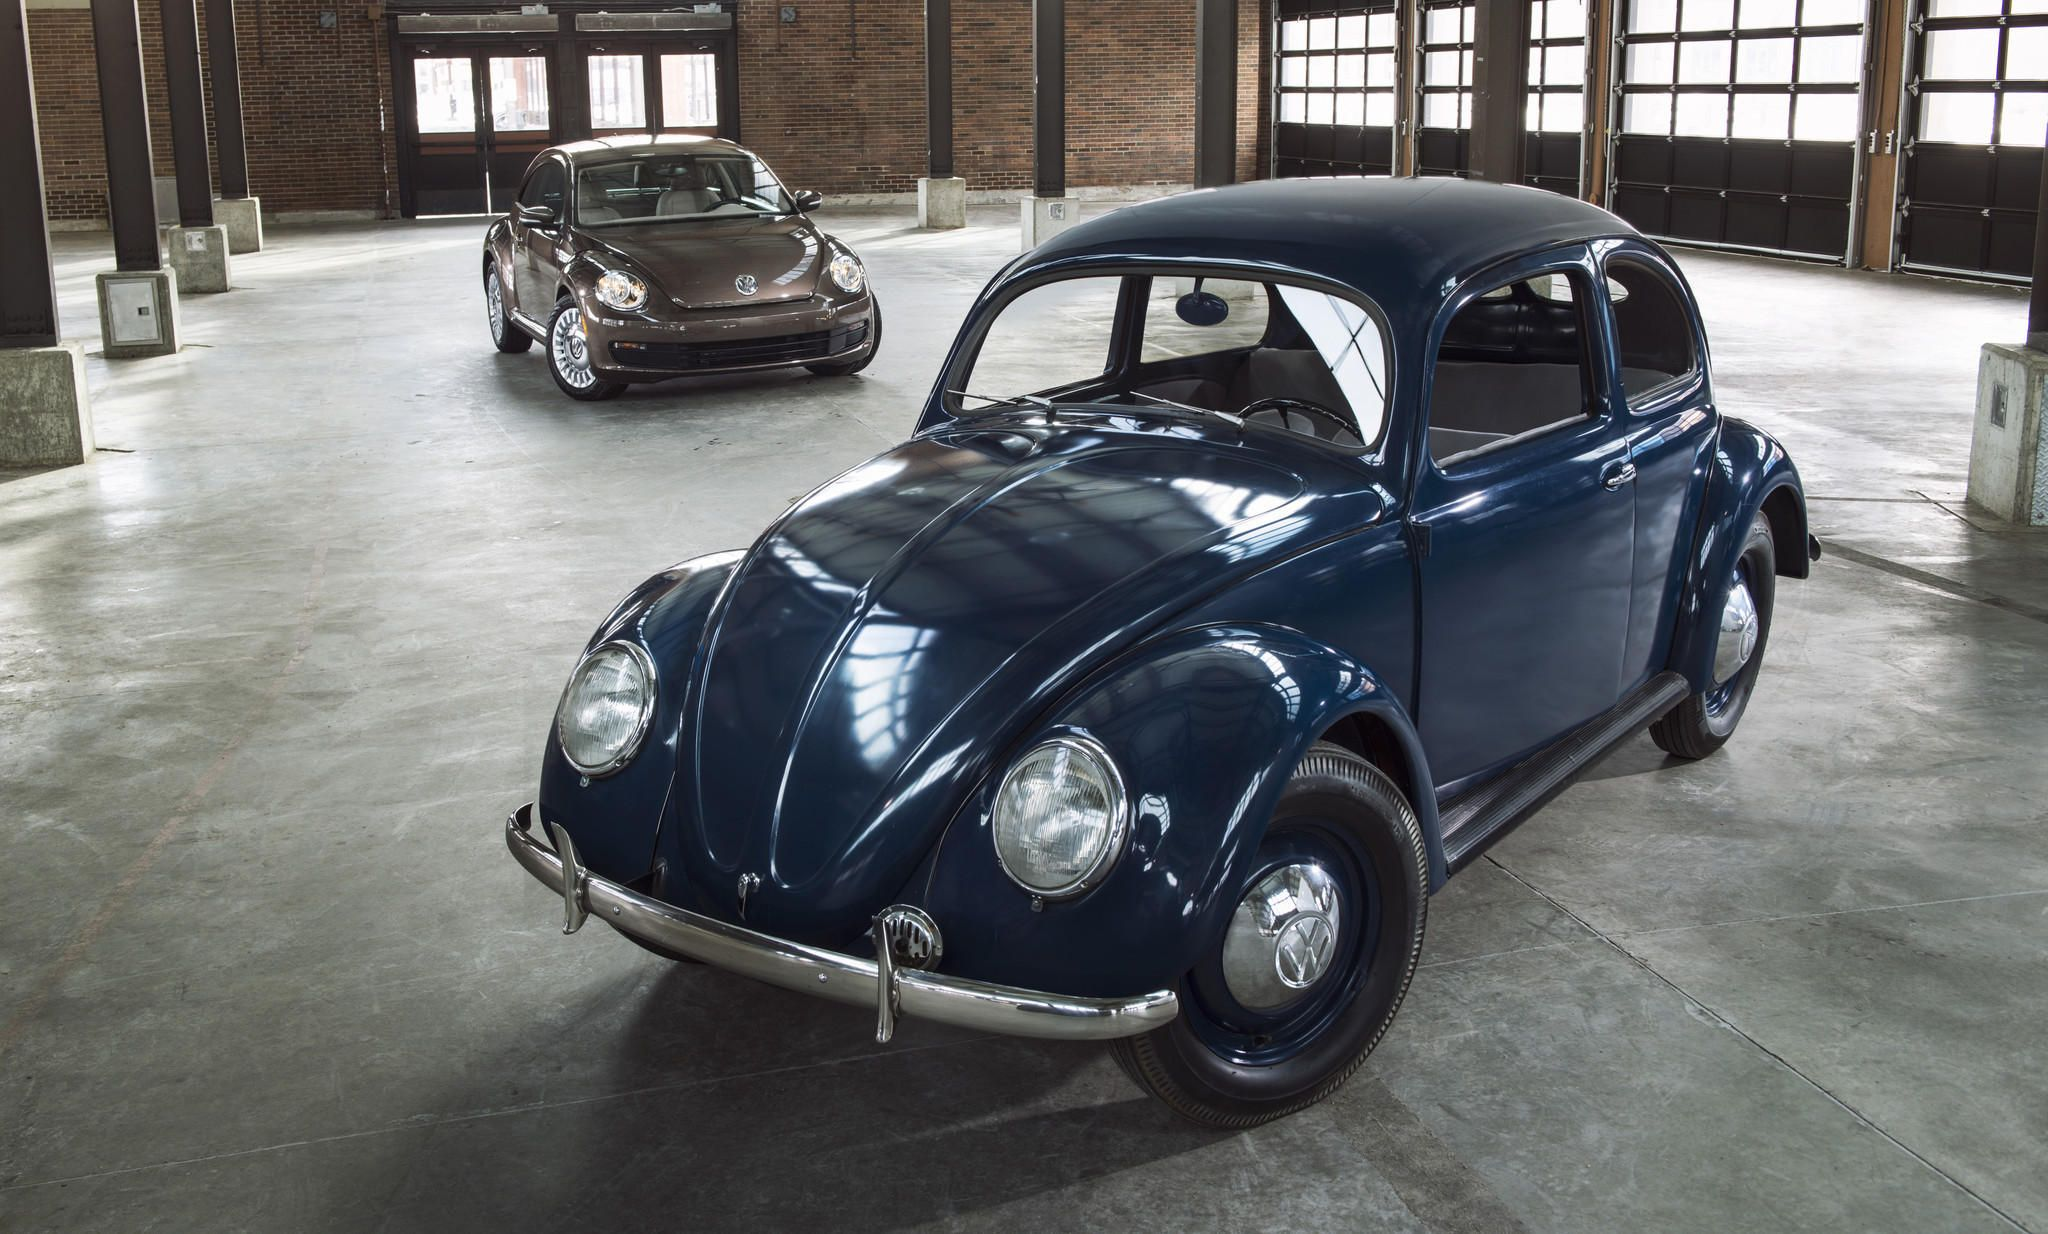 First Volkswagen Beetle arrived in a U.S. showroom 65 years ago ...